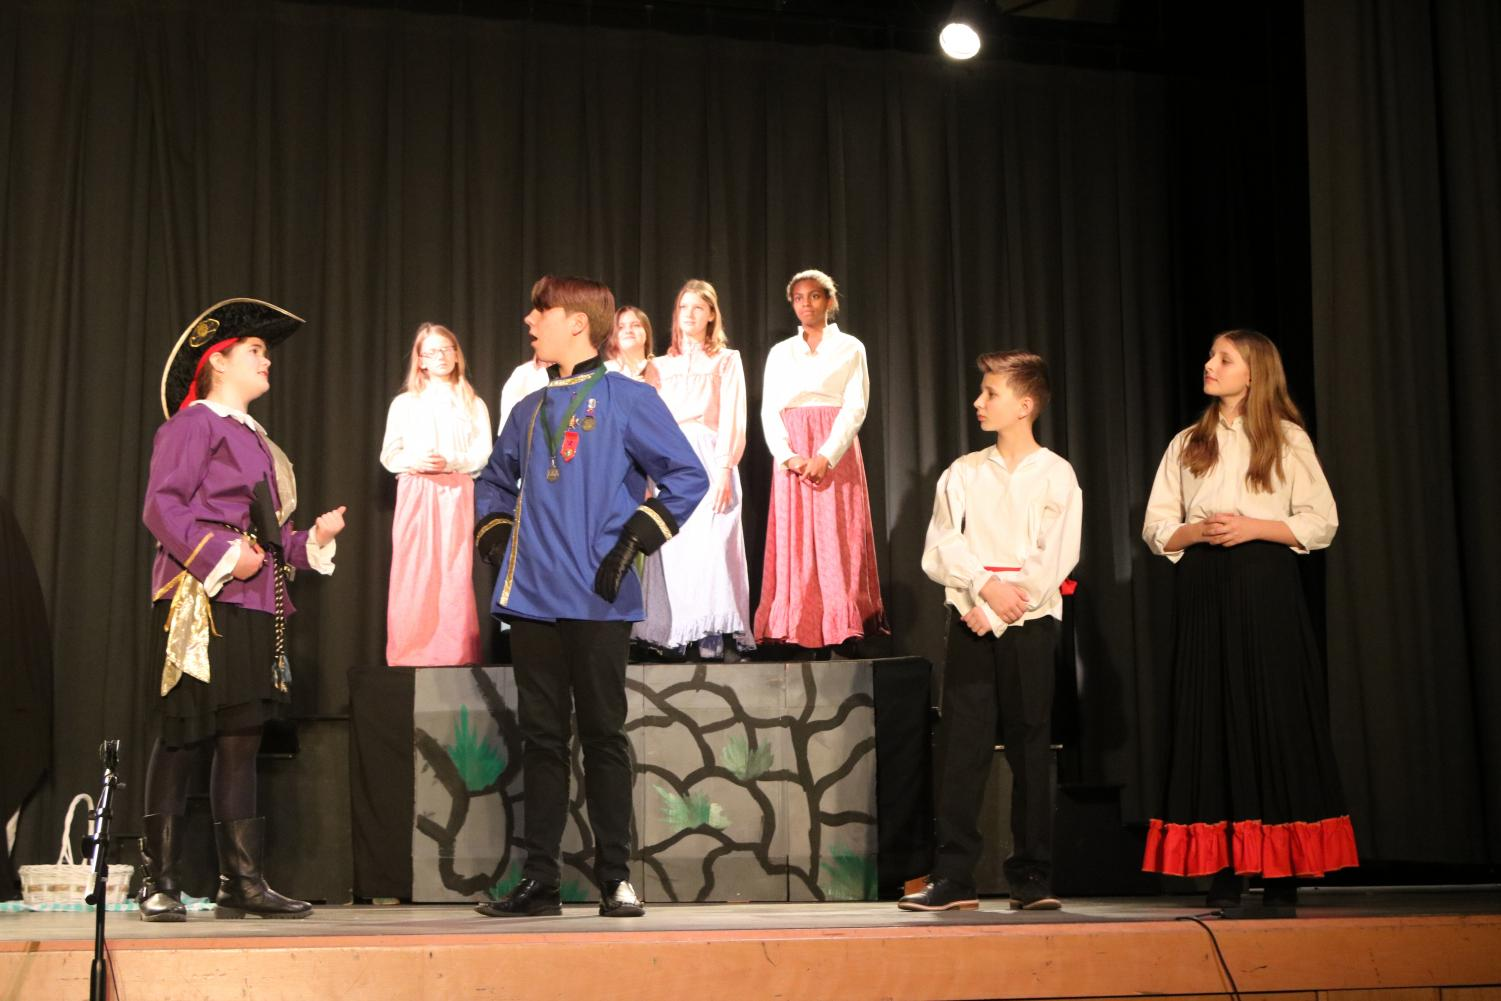 The+middle+school+actors+perform+the+play+%22Pirates%22.+James+Larocca+participated+in+the+announcements+for+the+play%2C+which+hyped+up+the+play.